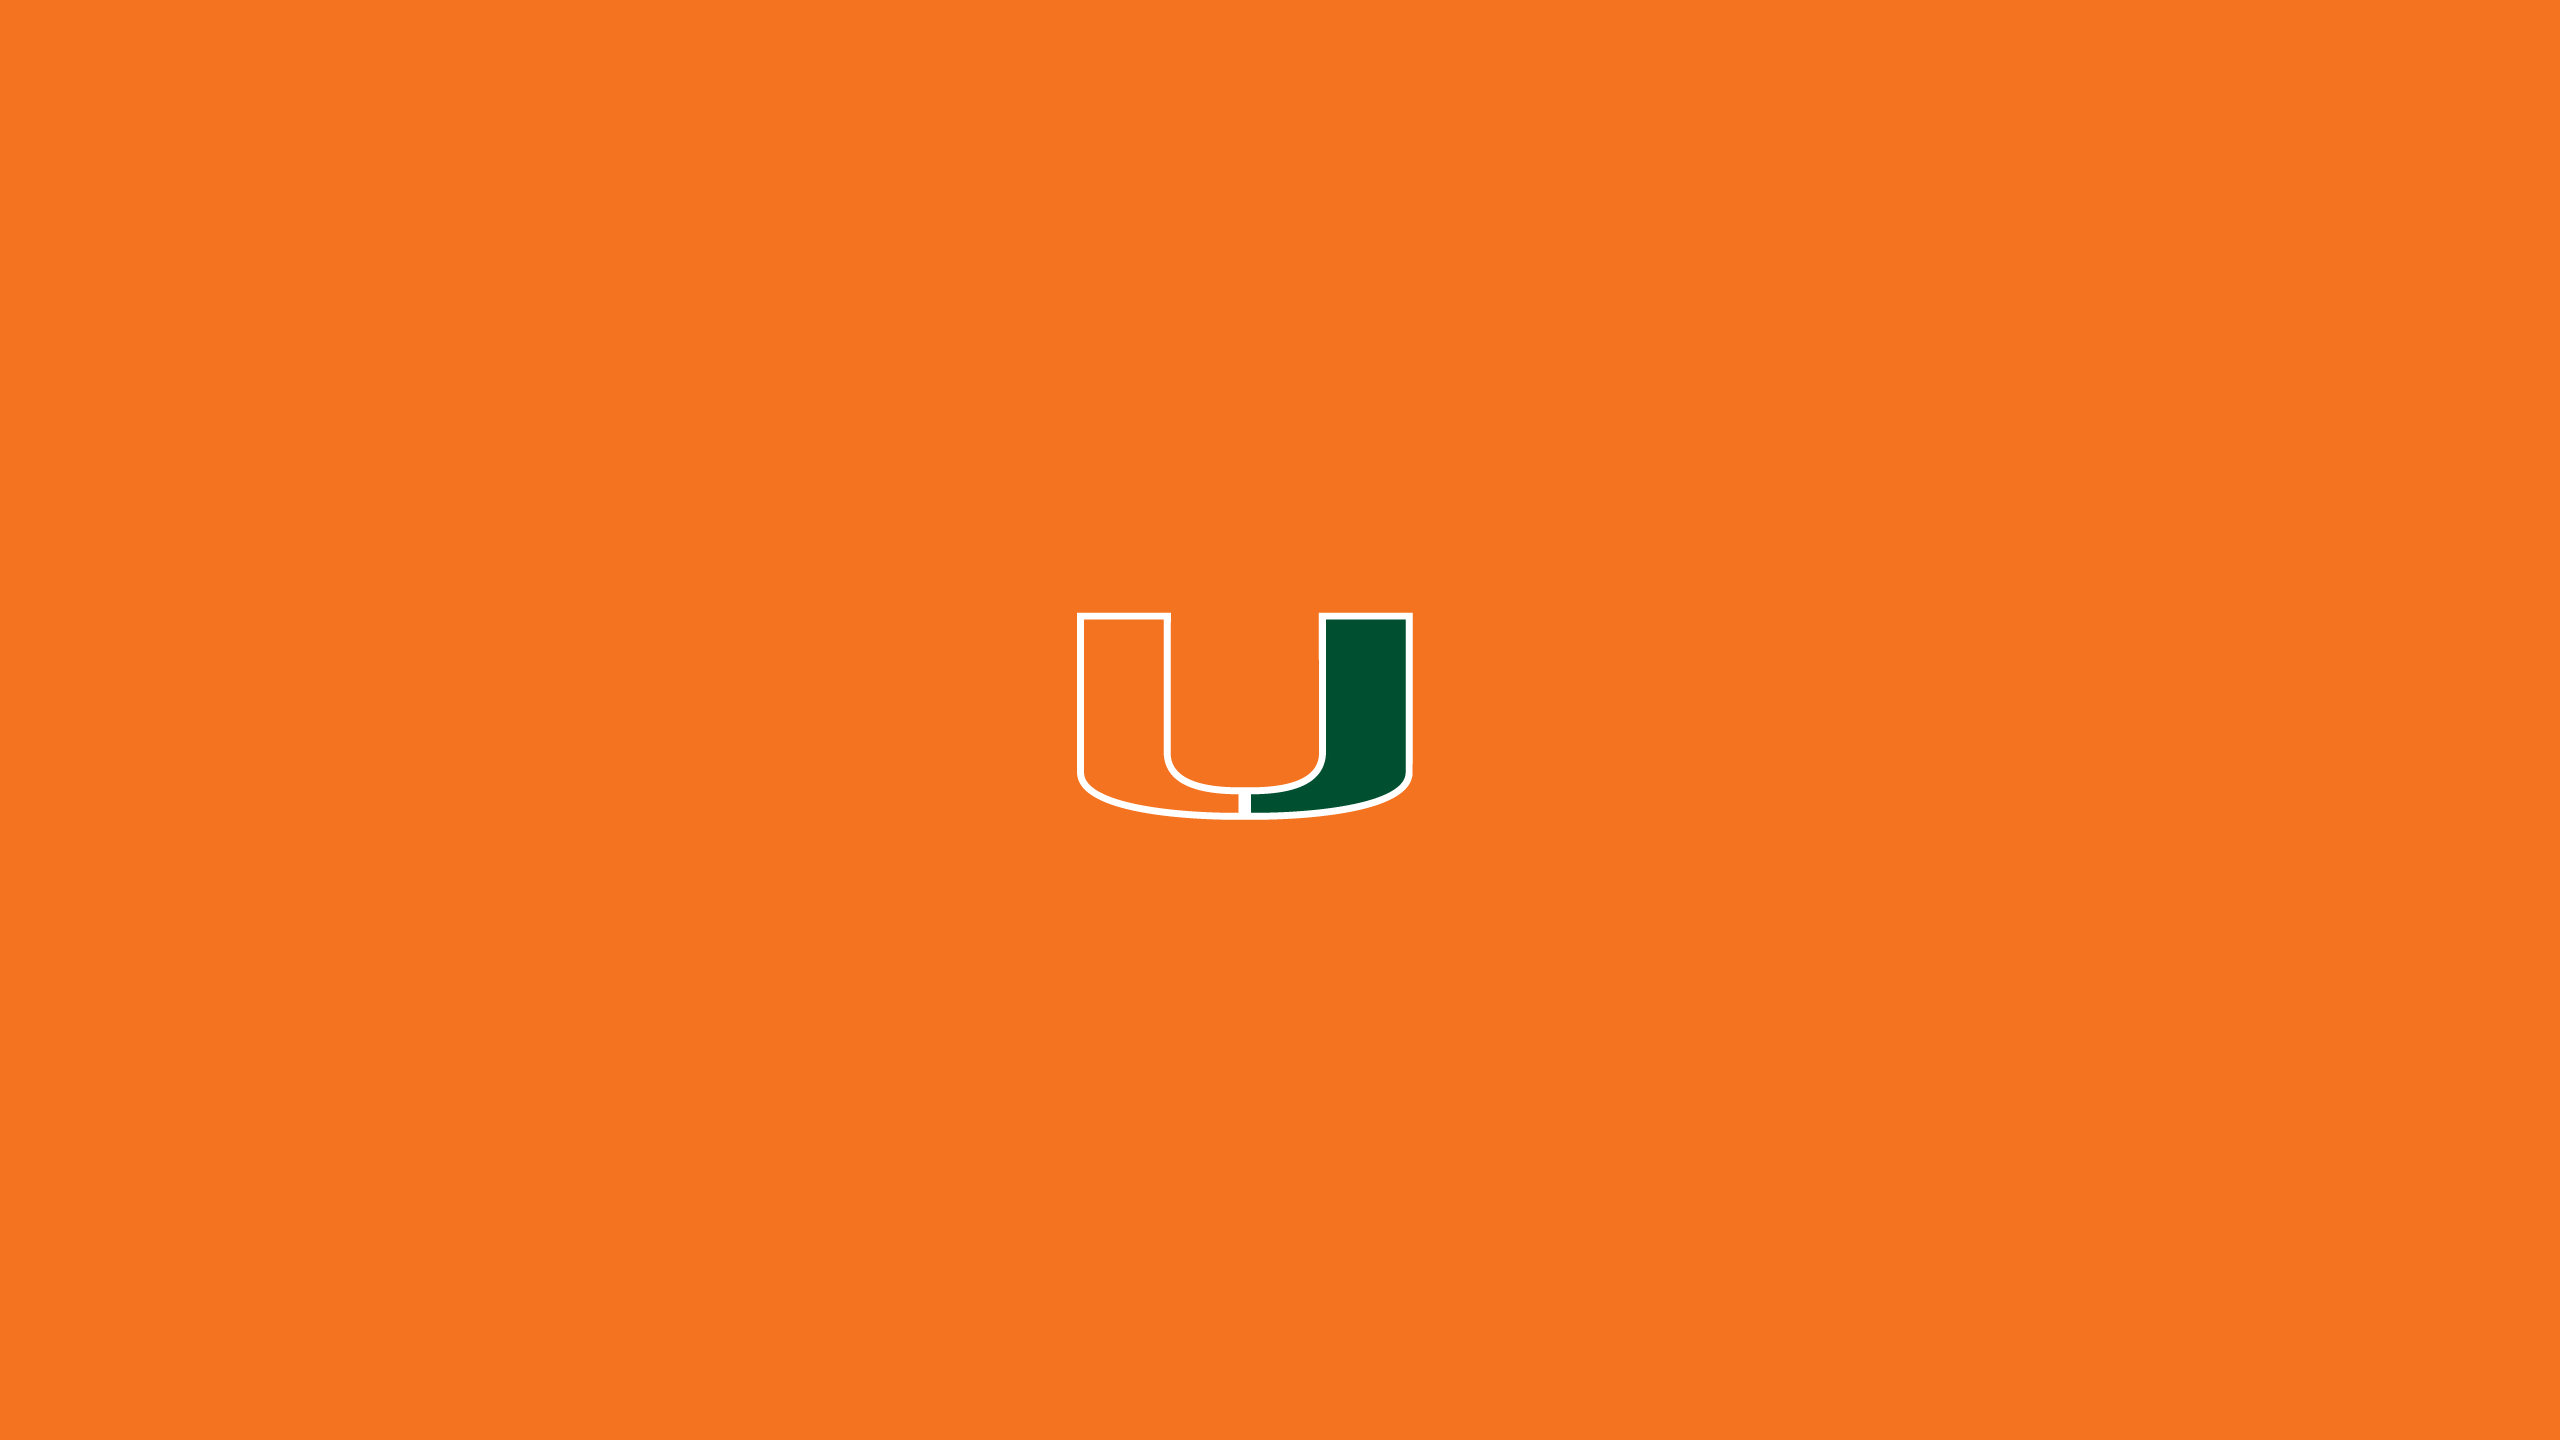 university of miami wallpapers wallpaper cave